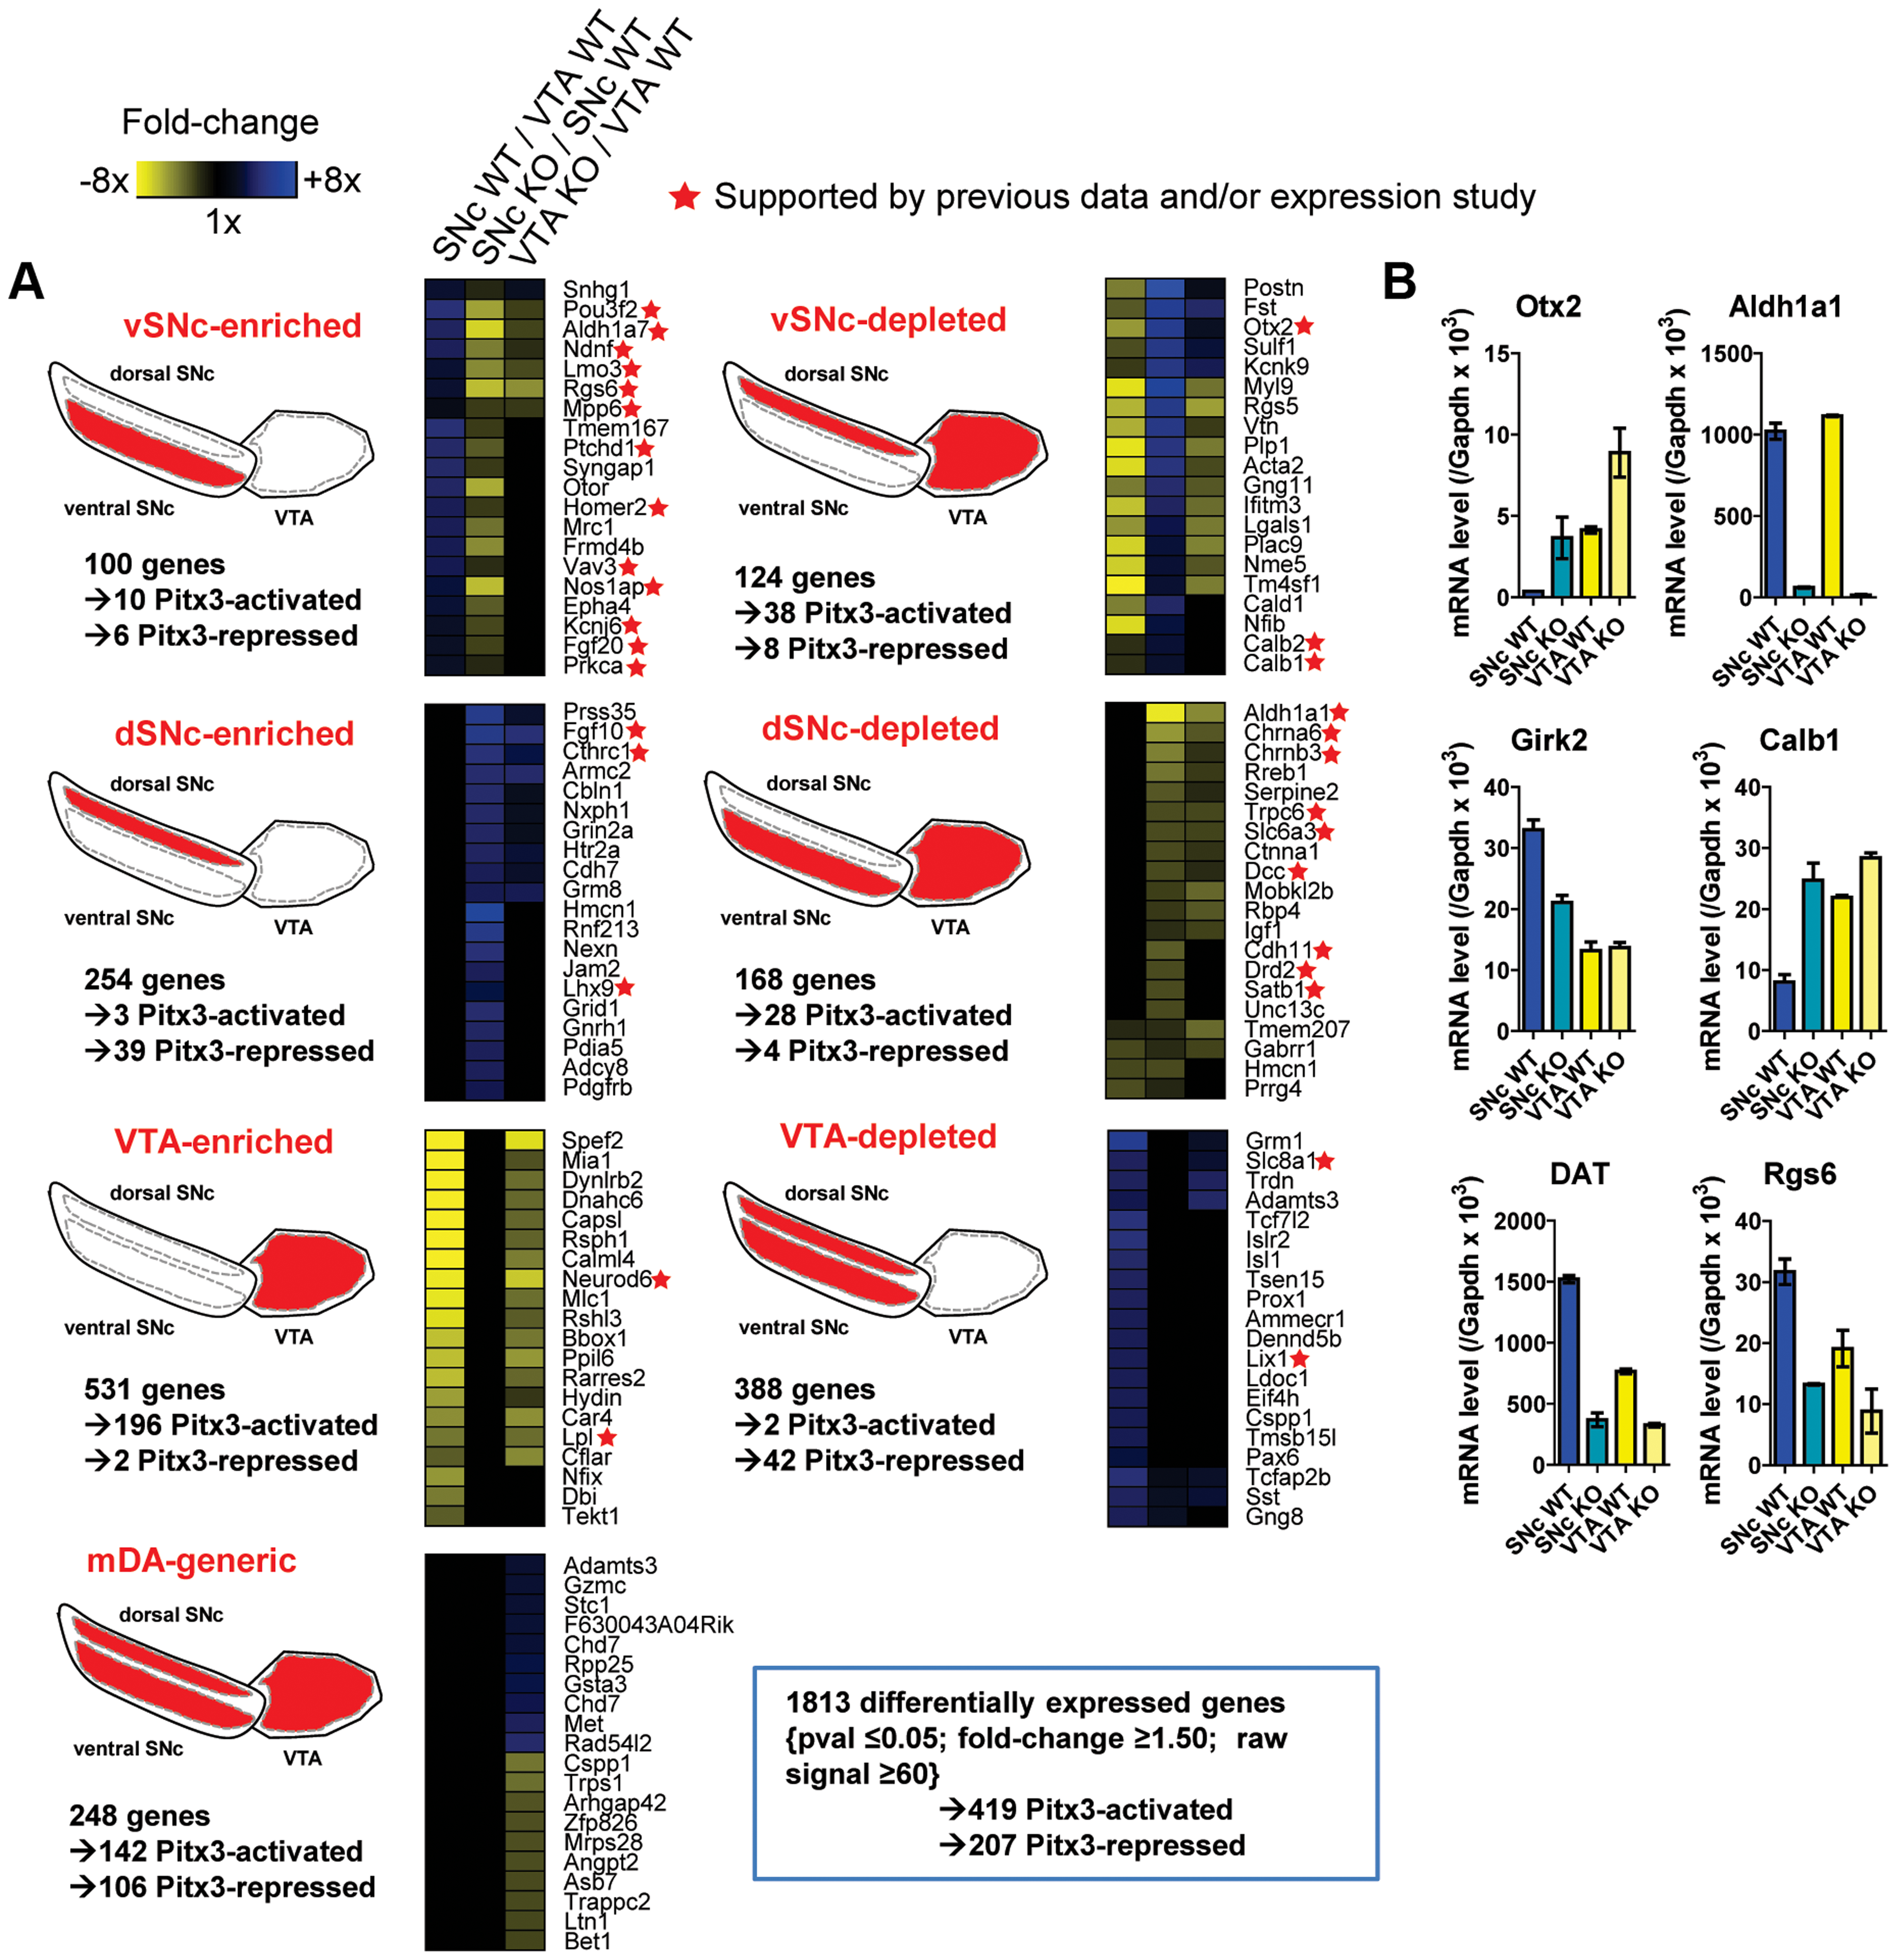 Subset-specific expression signatures of mDA neurons.